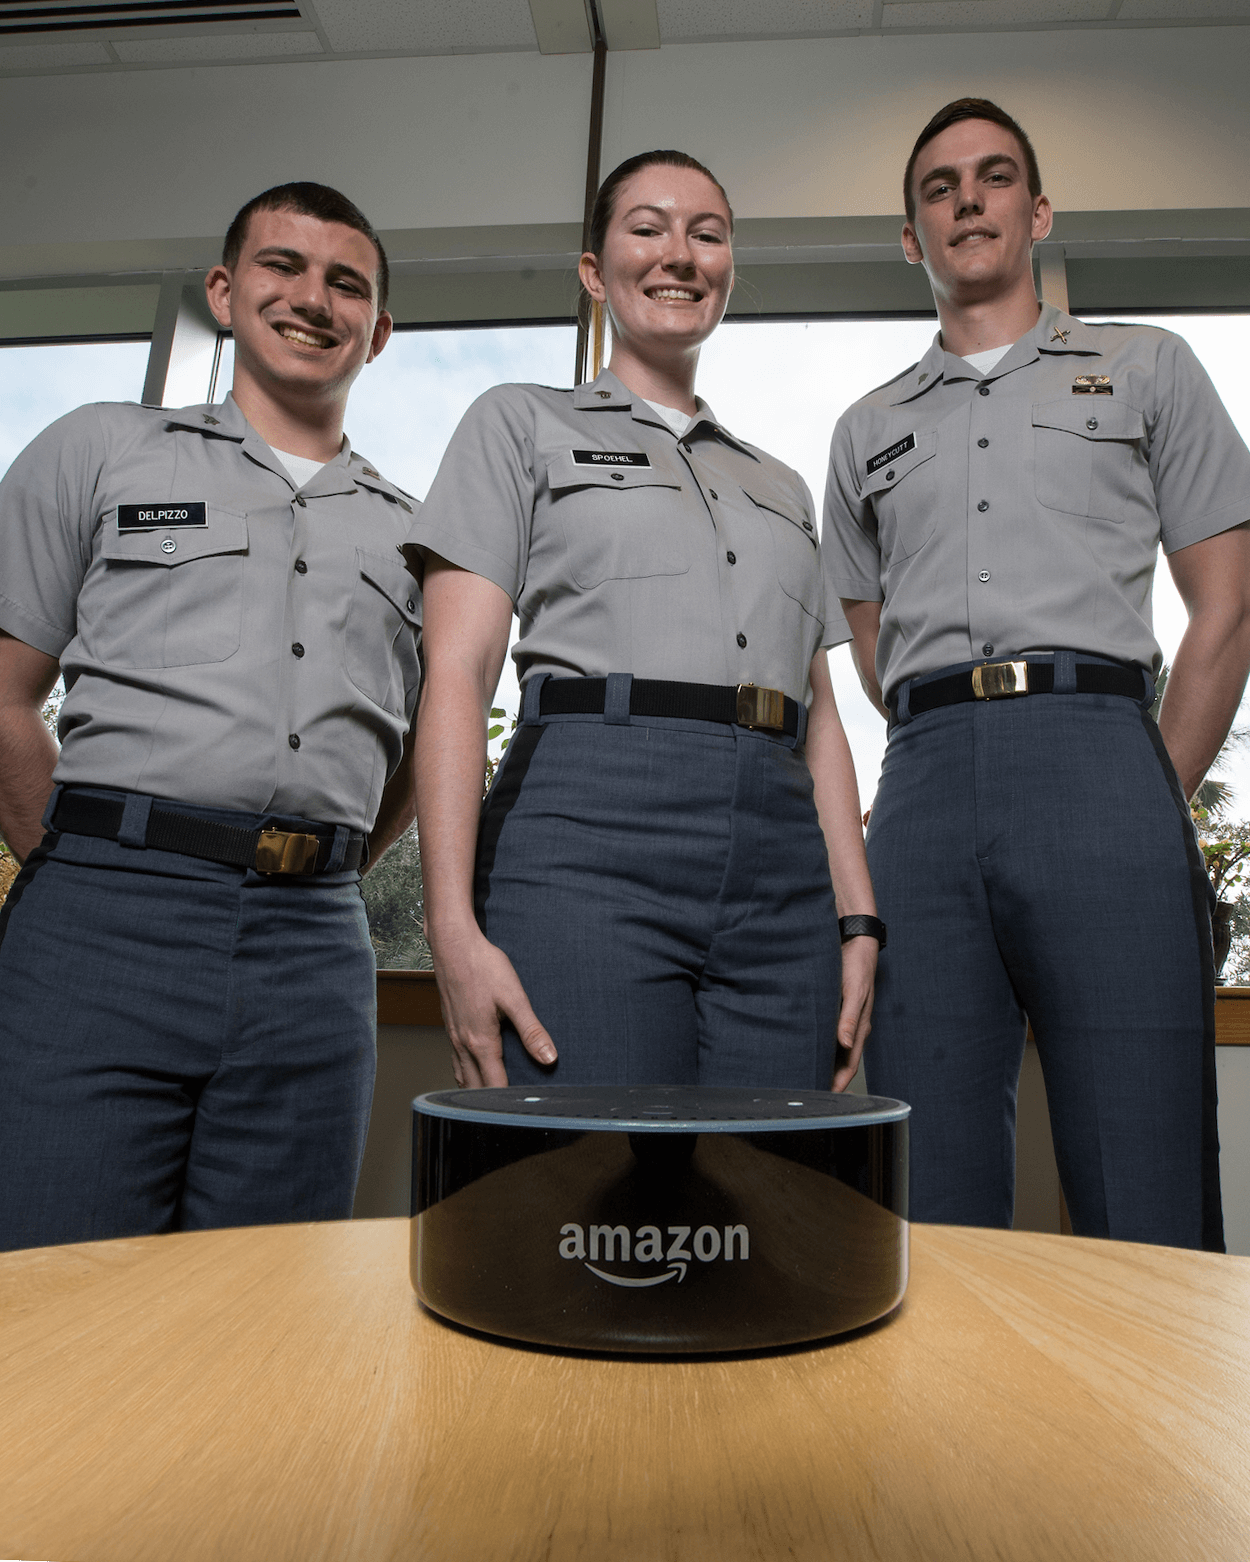 Cadets John Delpizzo, Elizabeth Spoehel, and Richard Honeycutt, all cyber security minors, have been analyzing the security of the IoT for over a year.